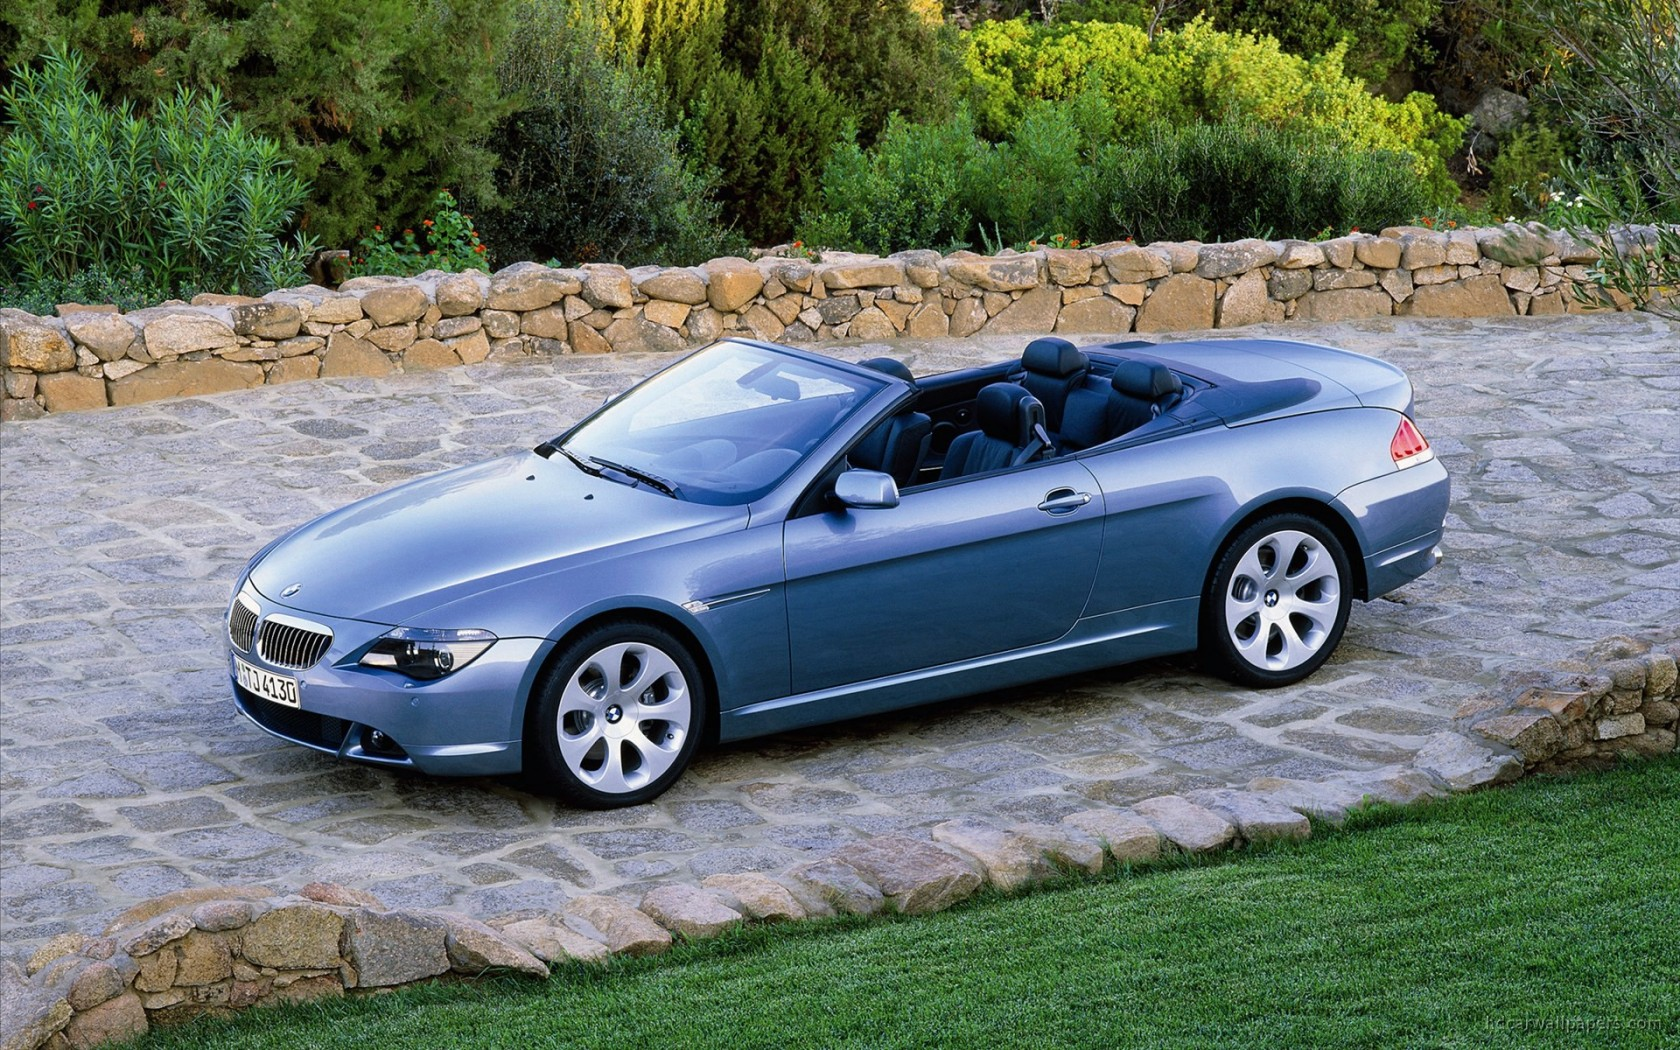 BMW 645Ci Convertible 2004 Wallpaper | HD Car Wallpapers ...